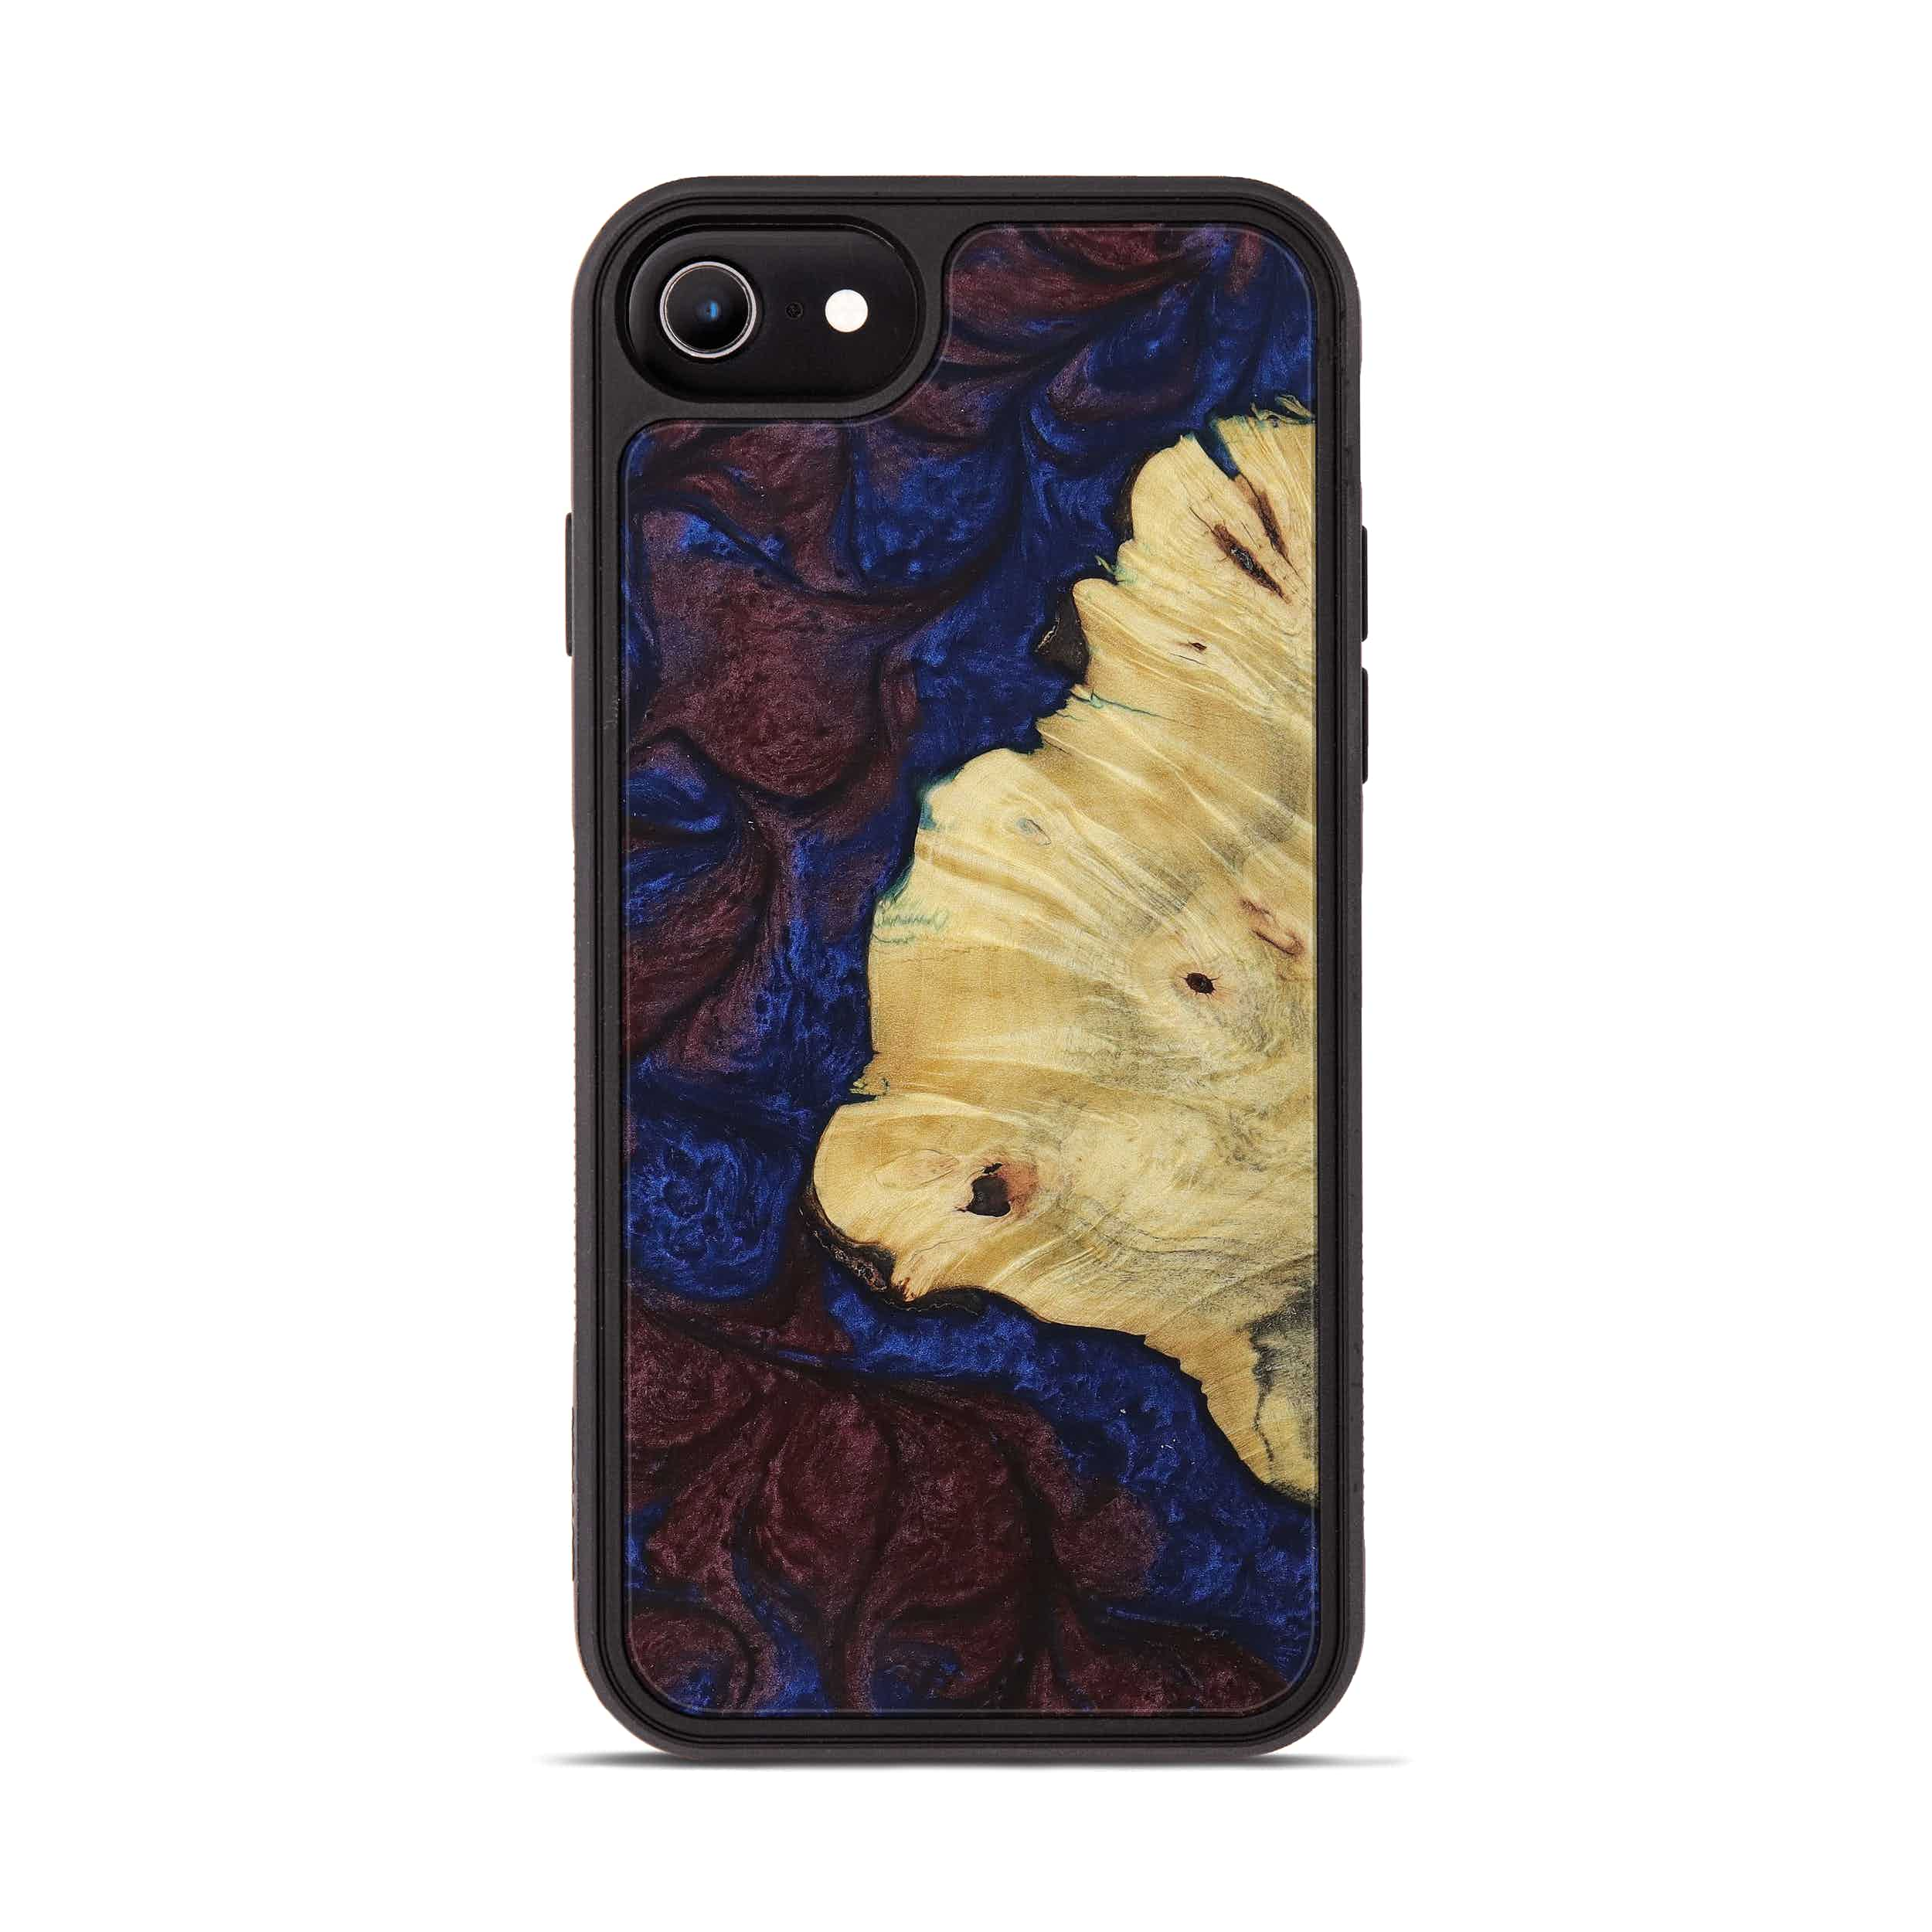 iPhone 6s Wood+Resin Phone Case - Tomy (Blue & Red, 394784)